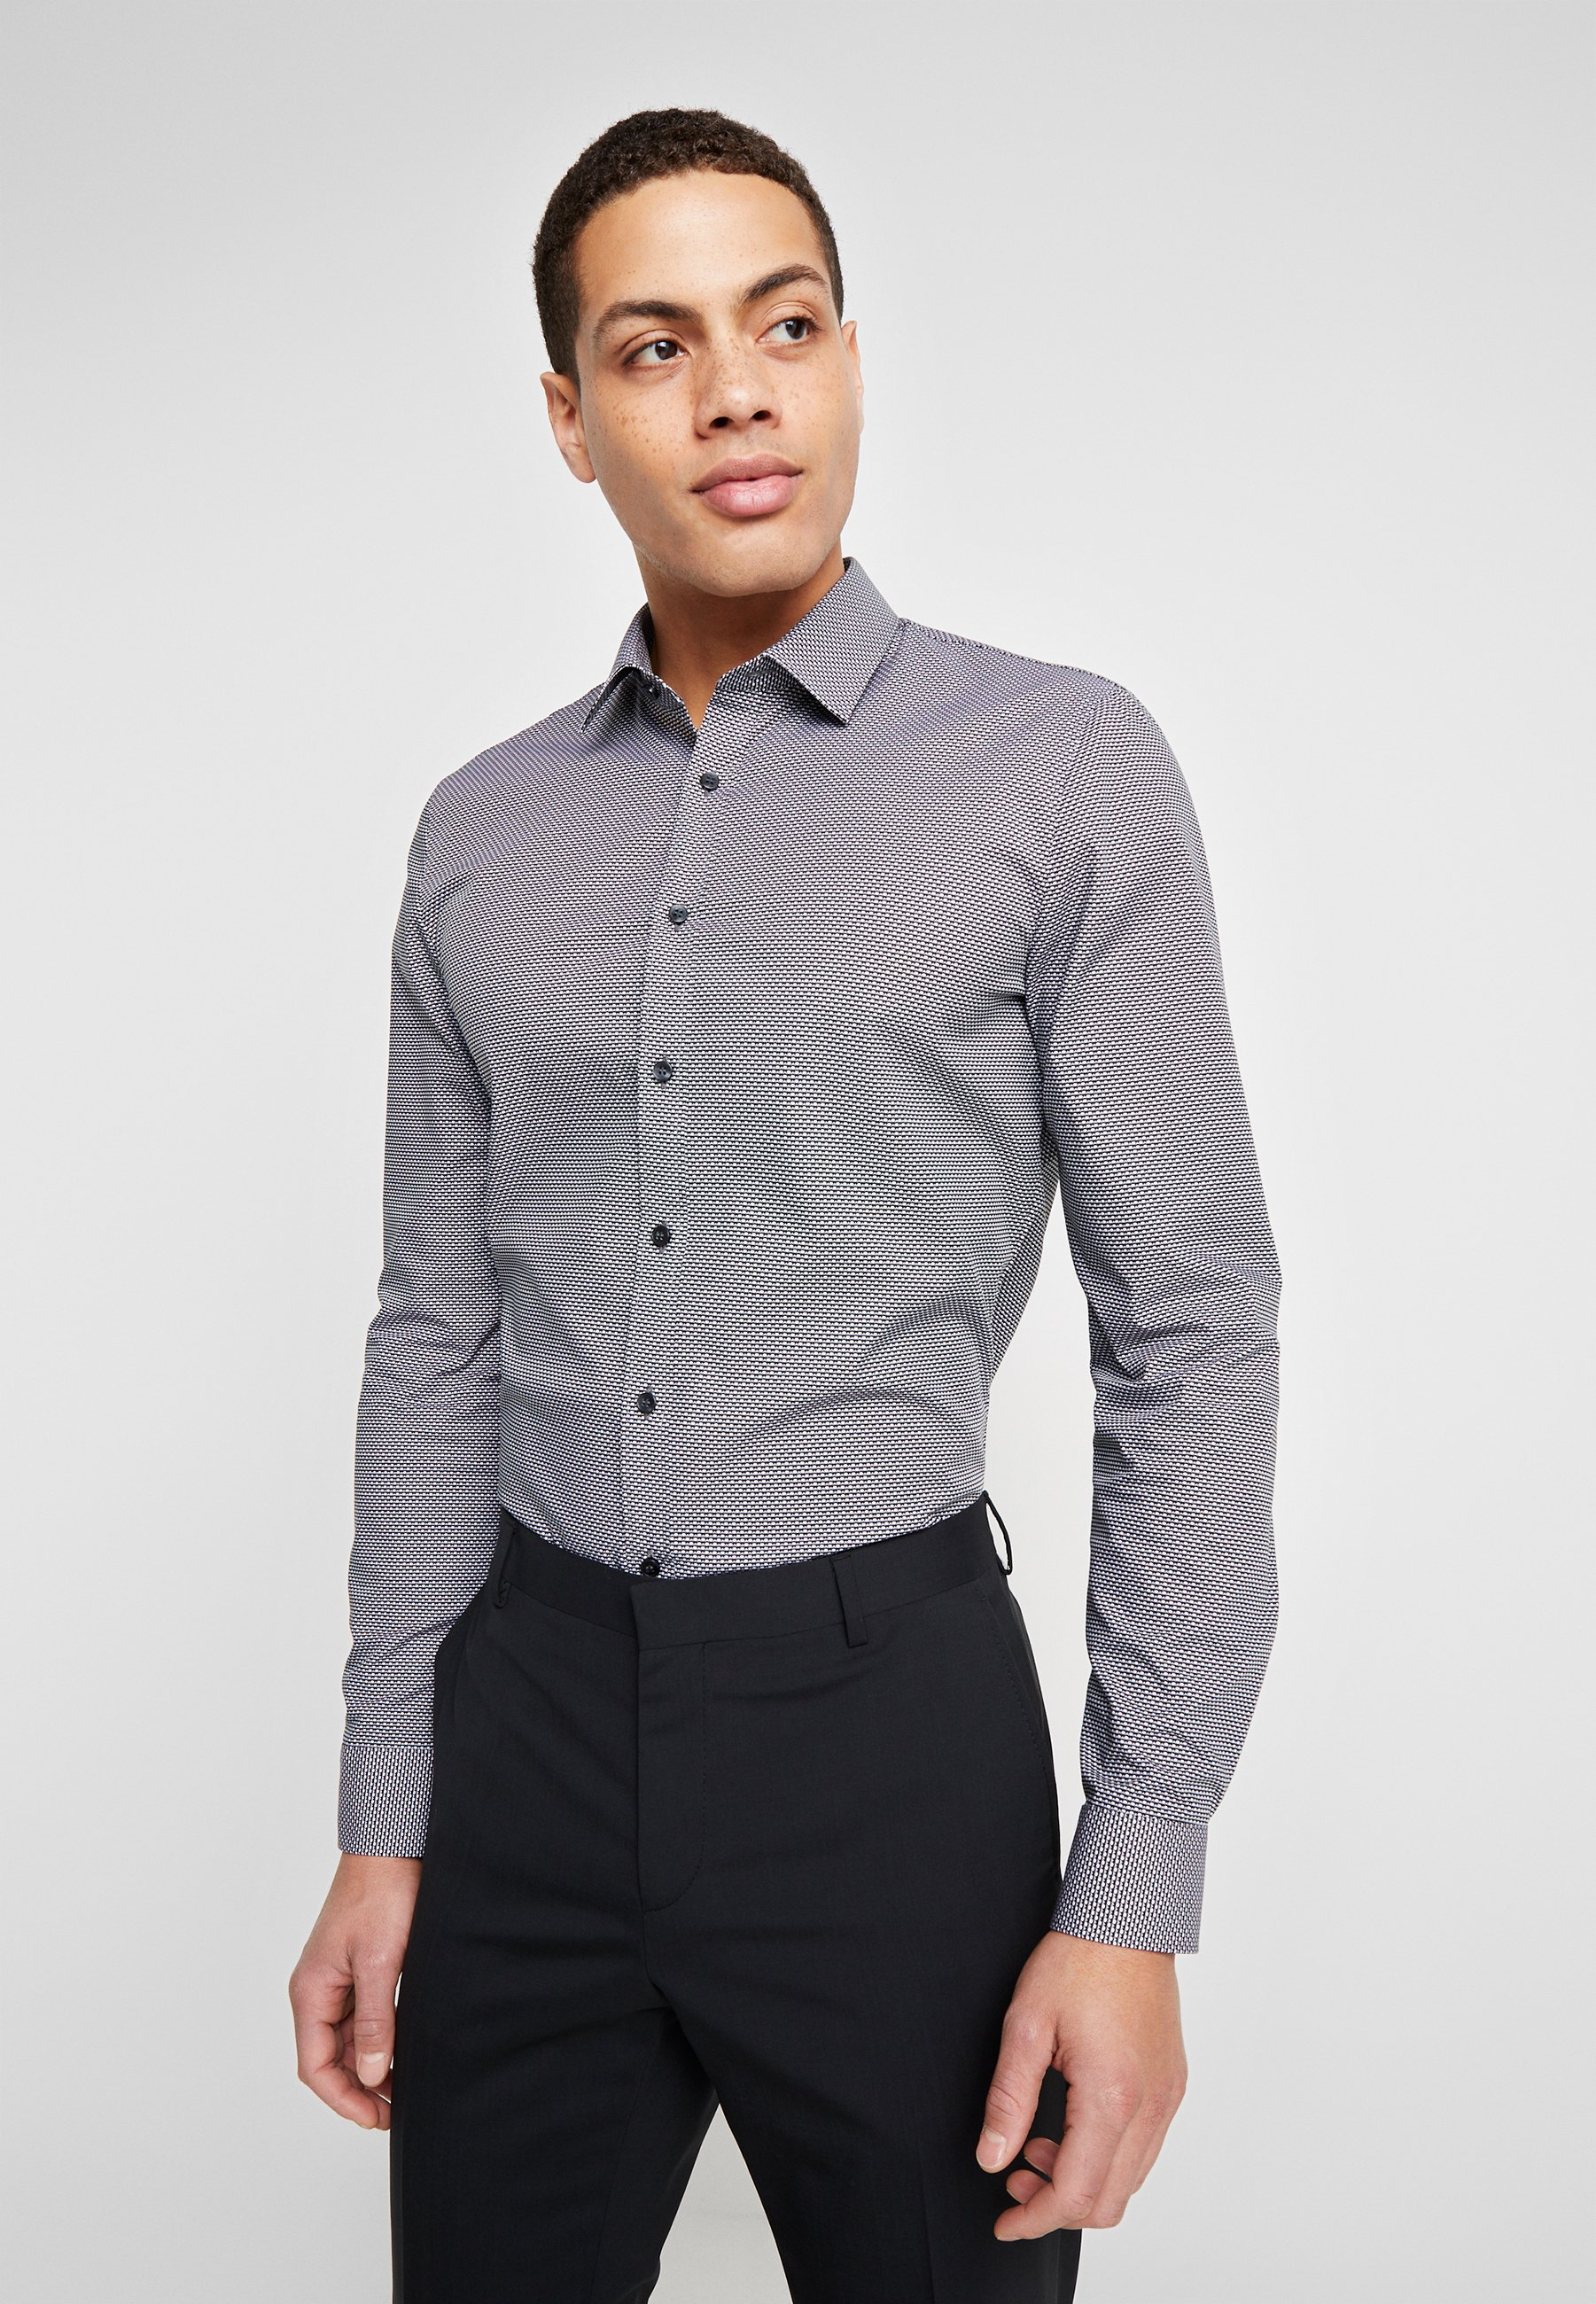 OLYMP OLYMP NO.6 SUPER SLIM FIT Skjorte grey Zalando.no